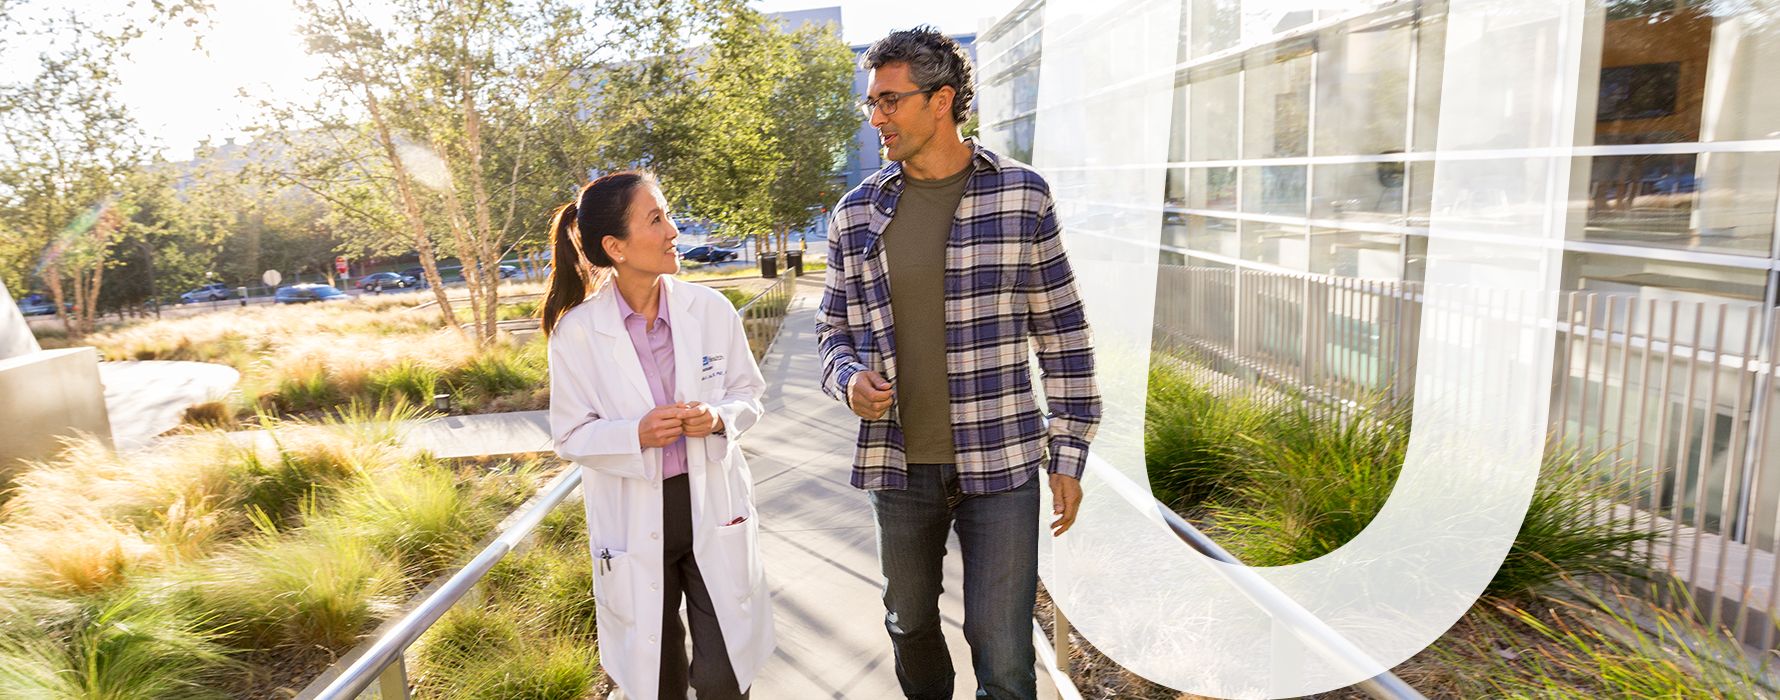 Doctor walking with patient